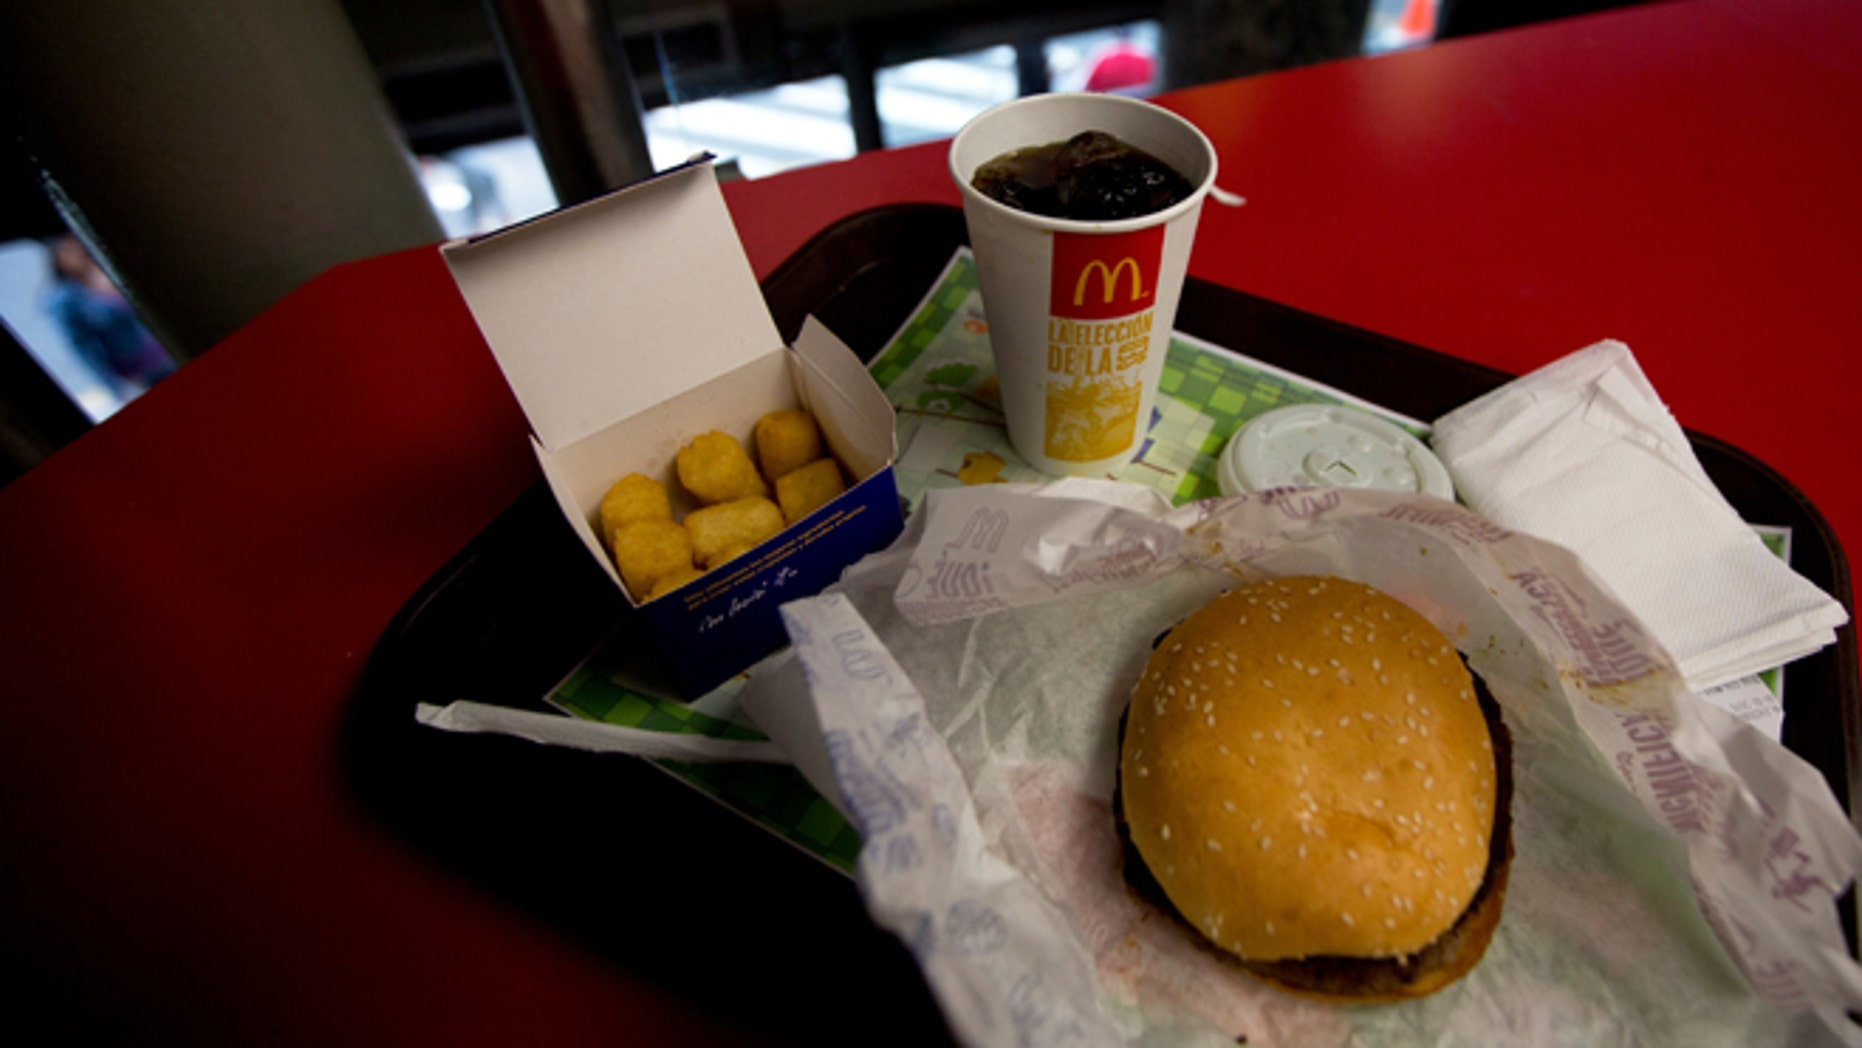 A Quarter Pounder meal is served with arepas or corn cakes at a local McDonald's, in Caracas, Venezuela, Tuesday, Jan. 6, 2015. McDonalds franchises in Venezuela have run out of potatoes and are now serving South American alternatives like deep-fried arepas or yuca, a starchy tuberous root. The franchisers are blaming a contract dispute with West Coast dock workers for halting the export of frozen fries to the country. (AP Photo/Fernando Llano)